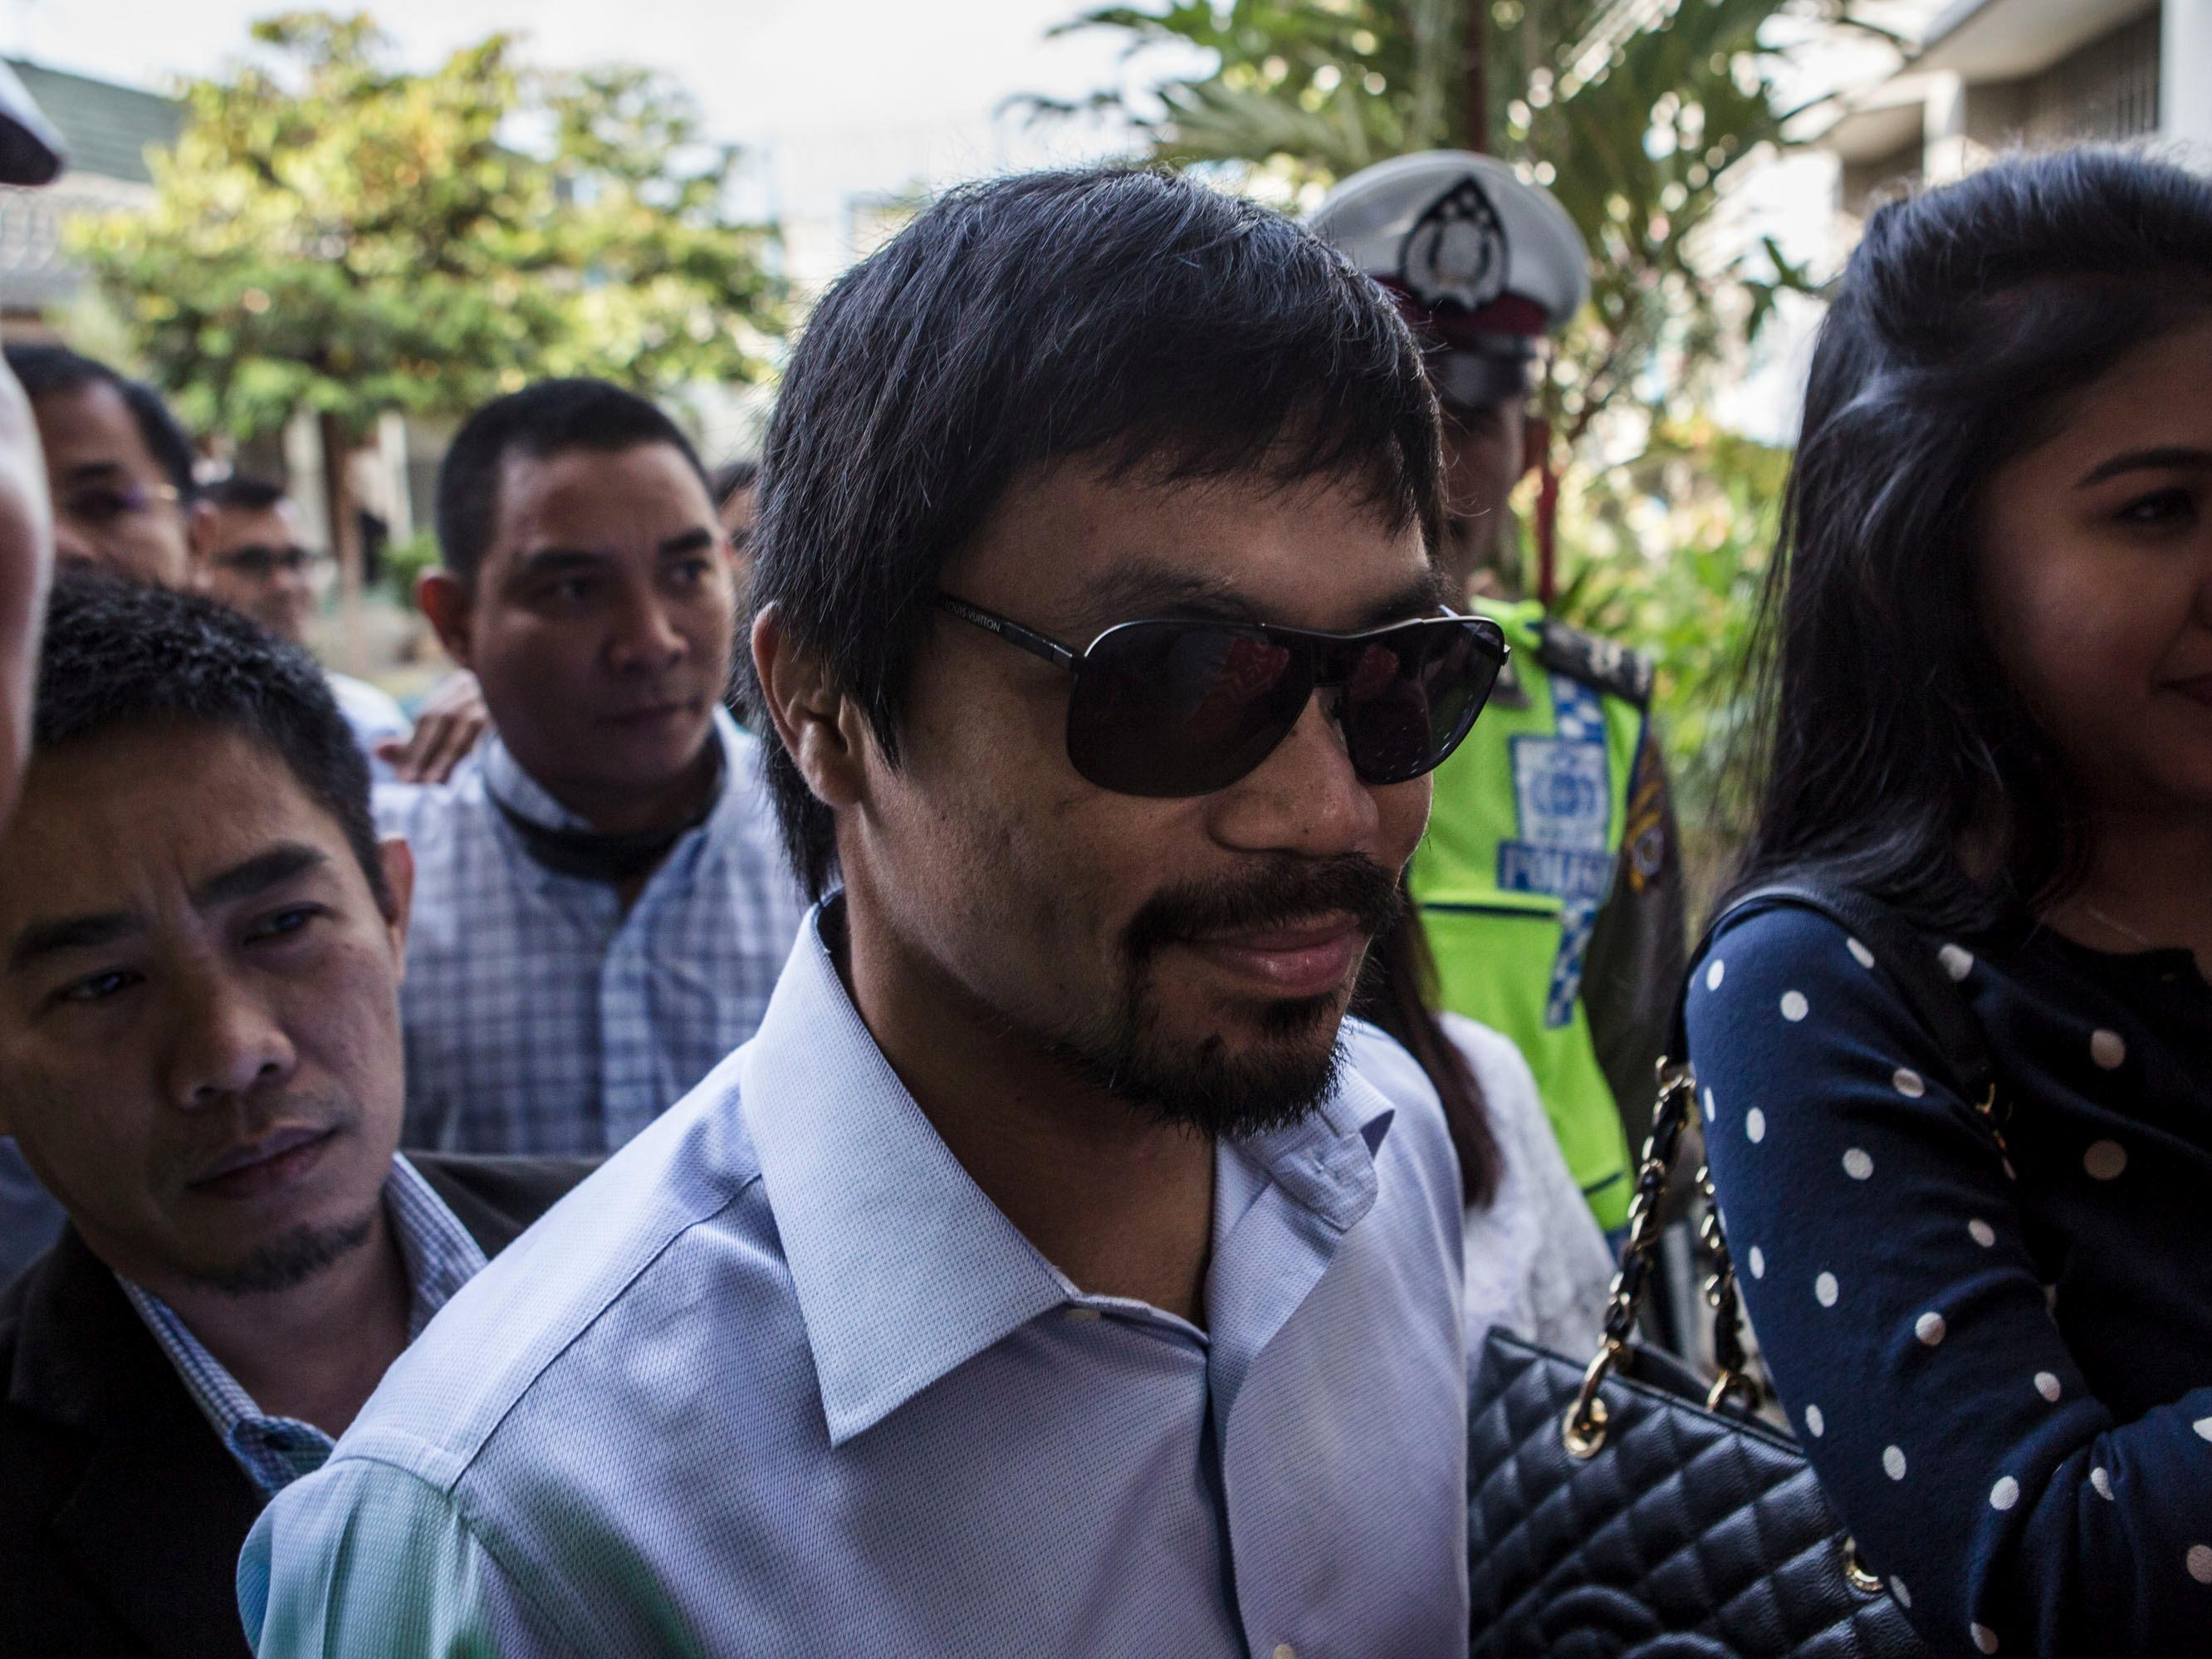 Any hopes for a Floyd Mayweather-Manny Pacquiao rematch just took another huge blow